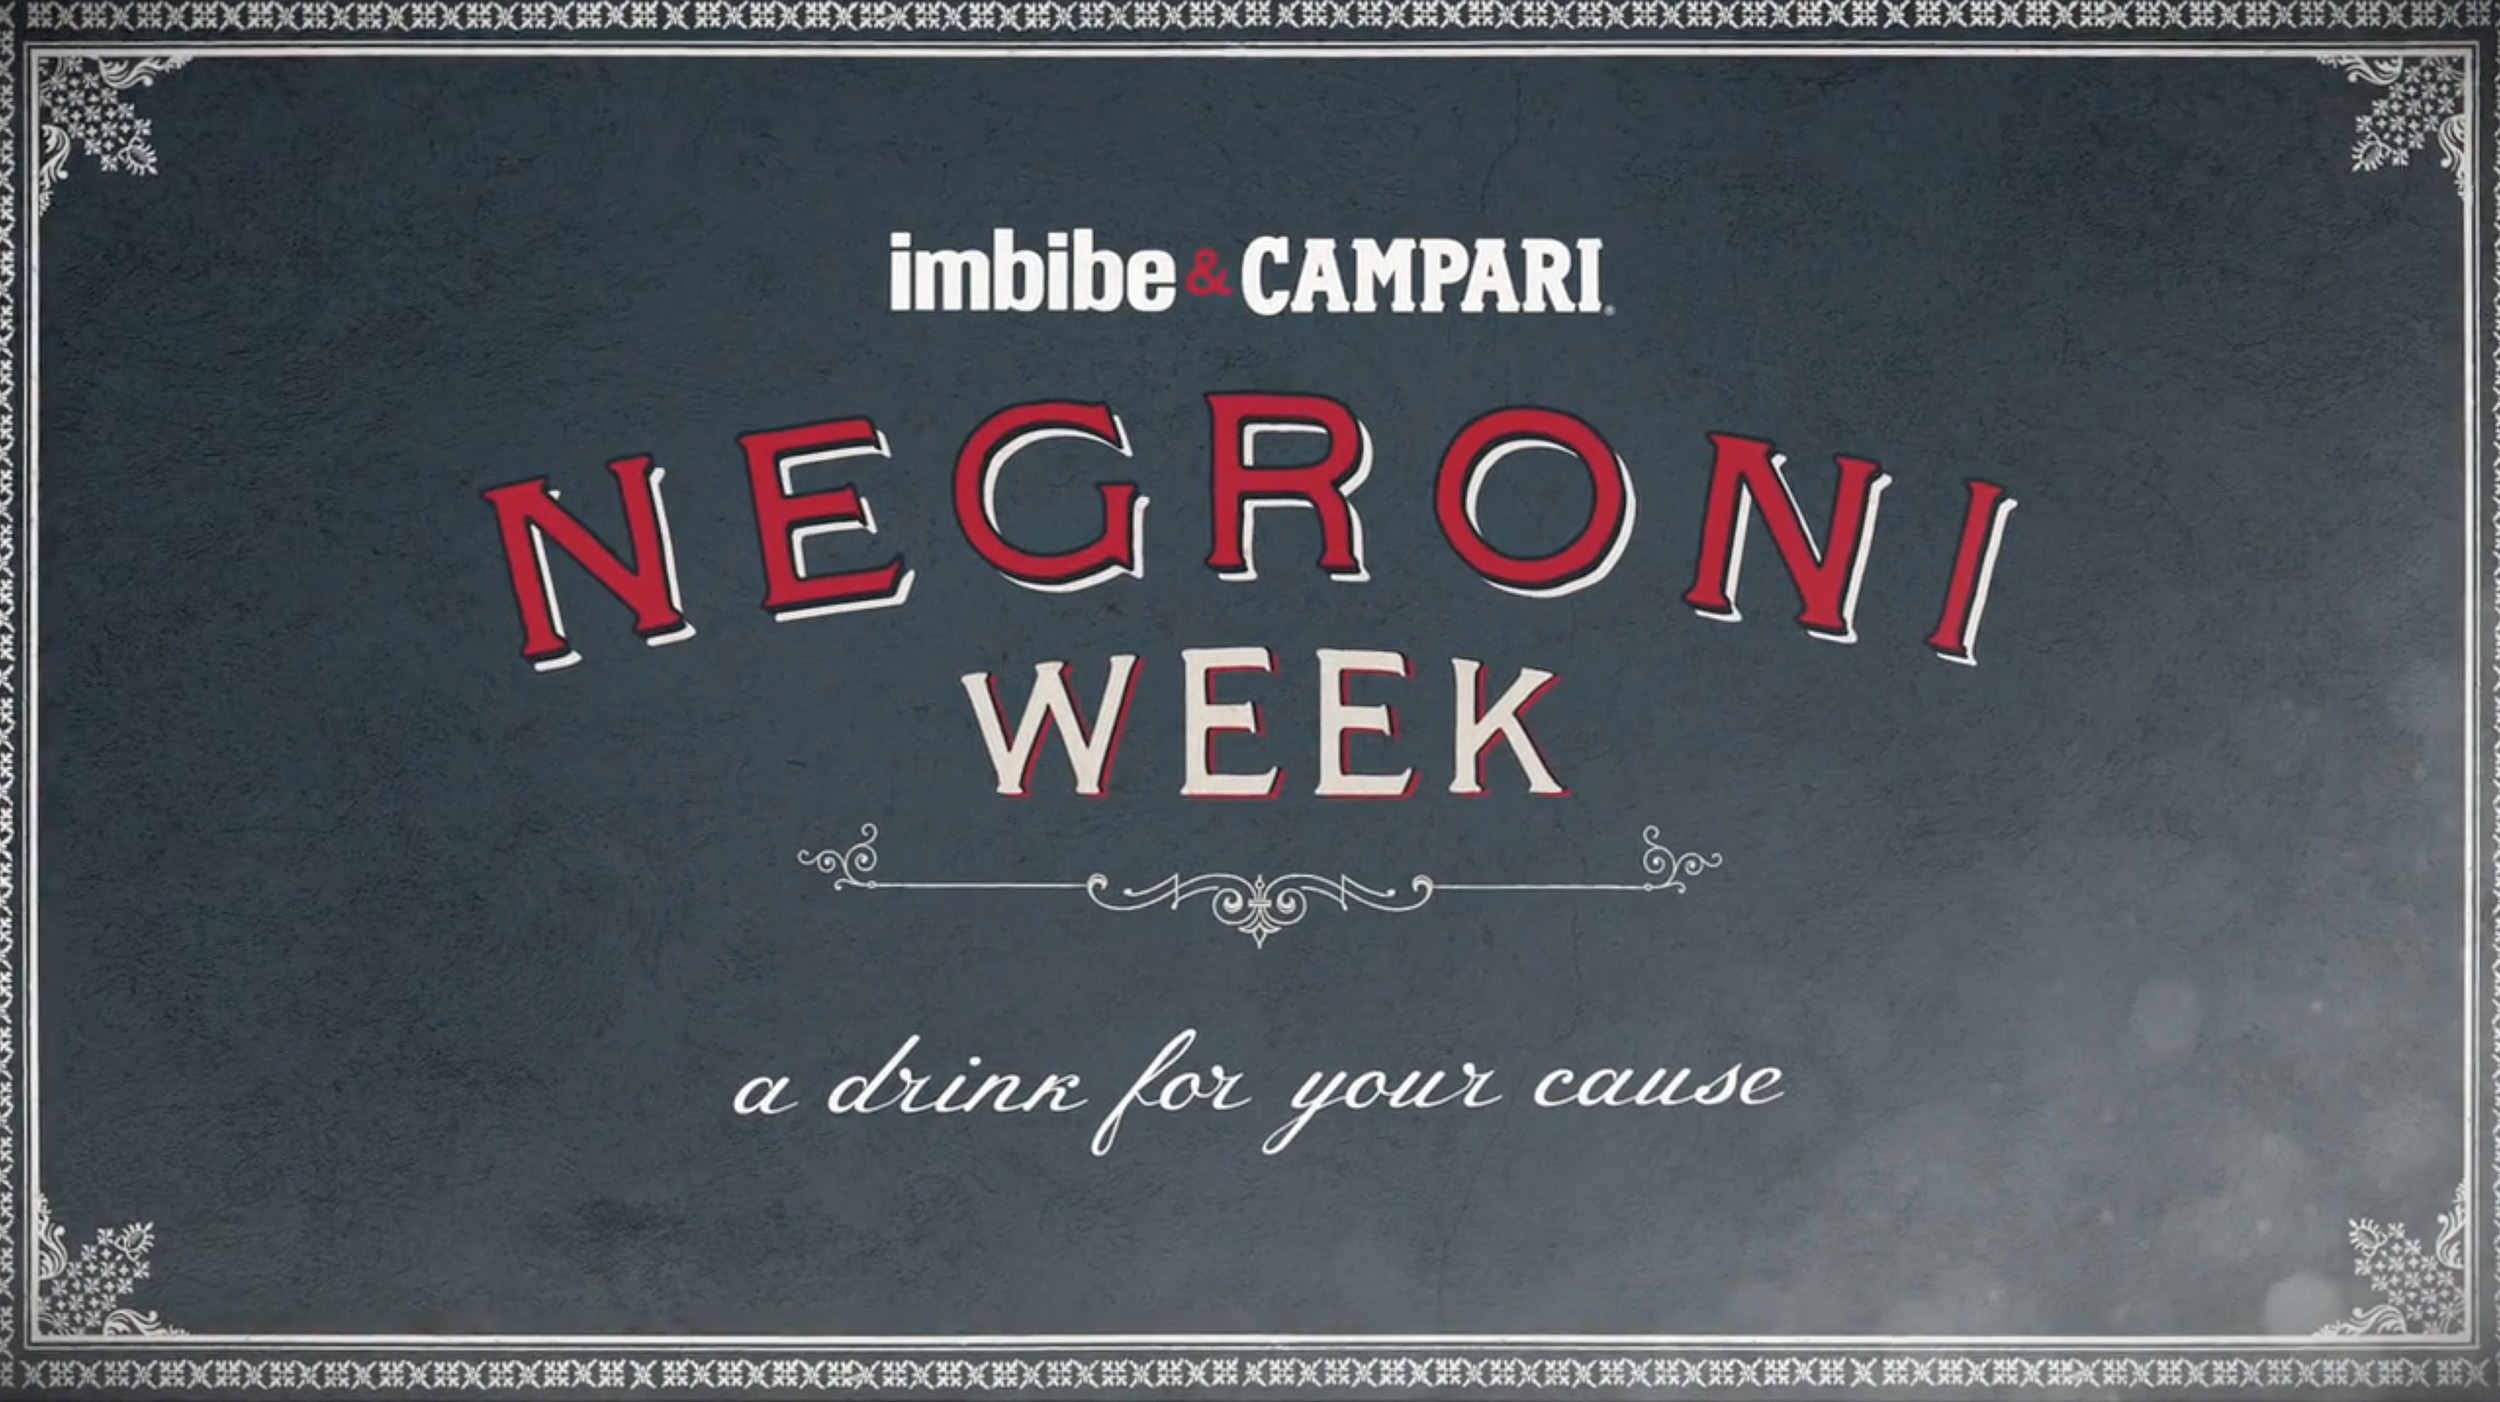 Campari Negroni - BRANDED CONTENT FOR CAMPARI'S FAMOUS NEGRONI WEEK